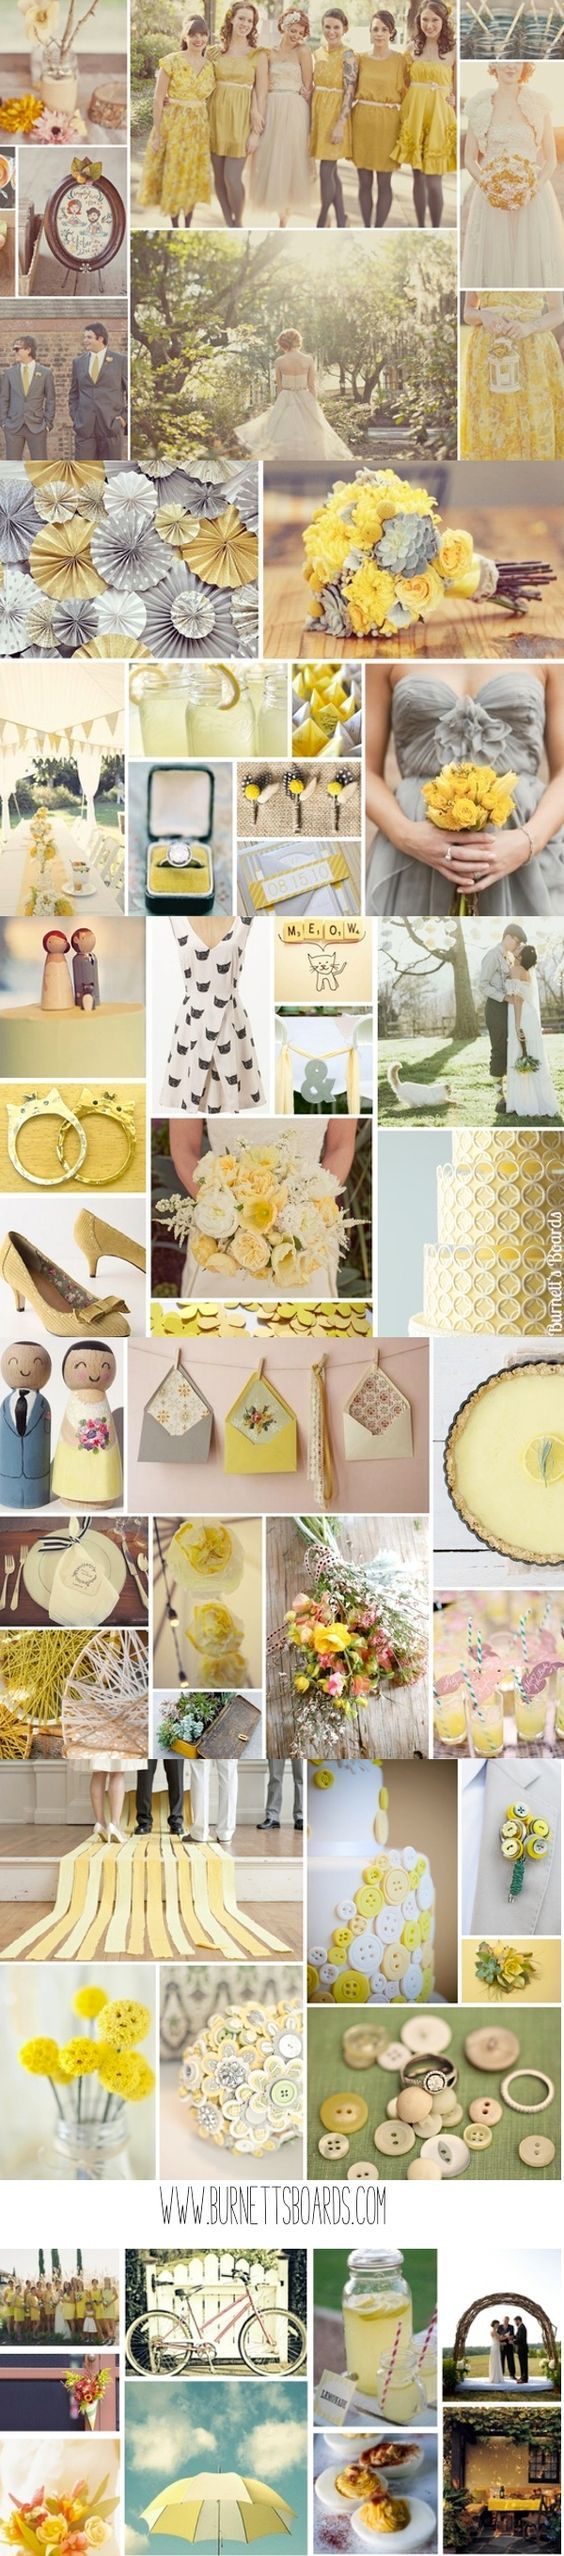 vintage yellow wedding inspiration from www.burnettsboards.com ---- I love the buttons on the cake!!: